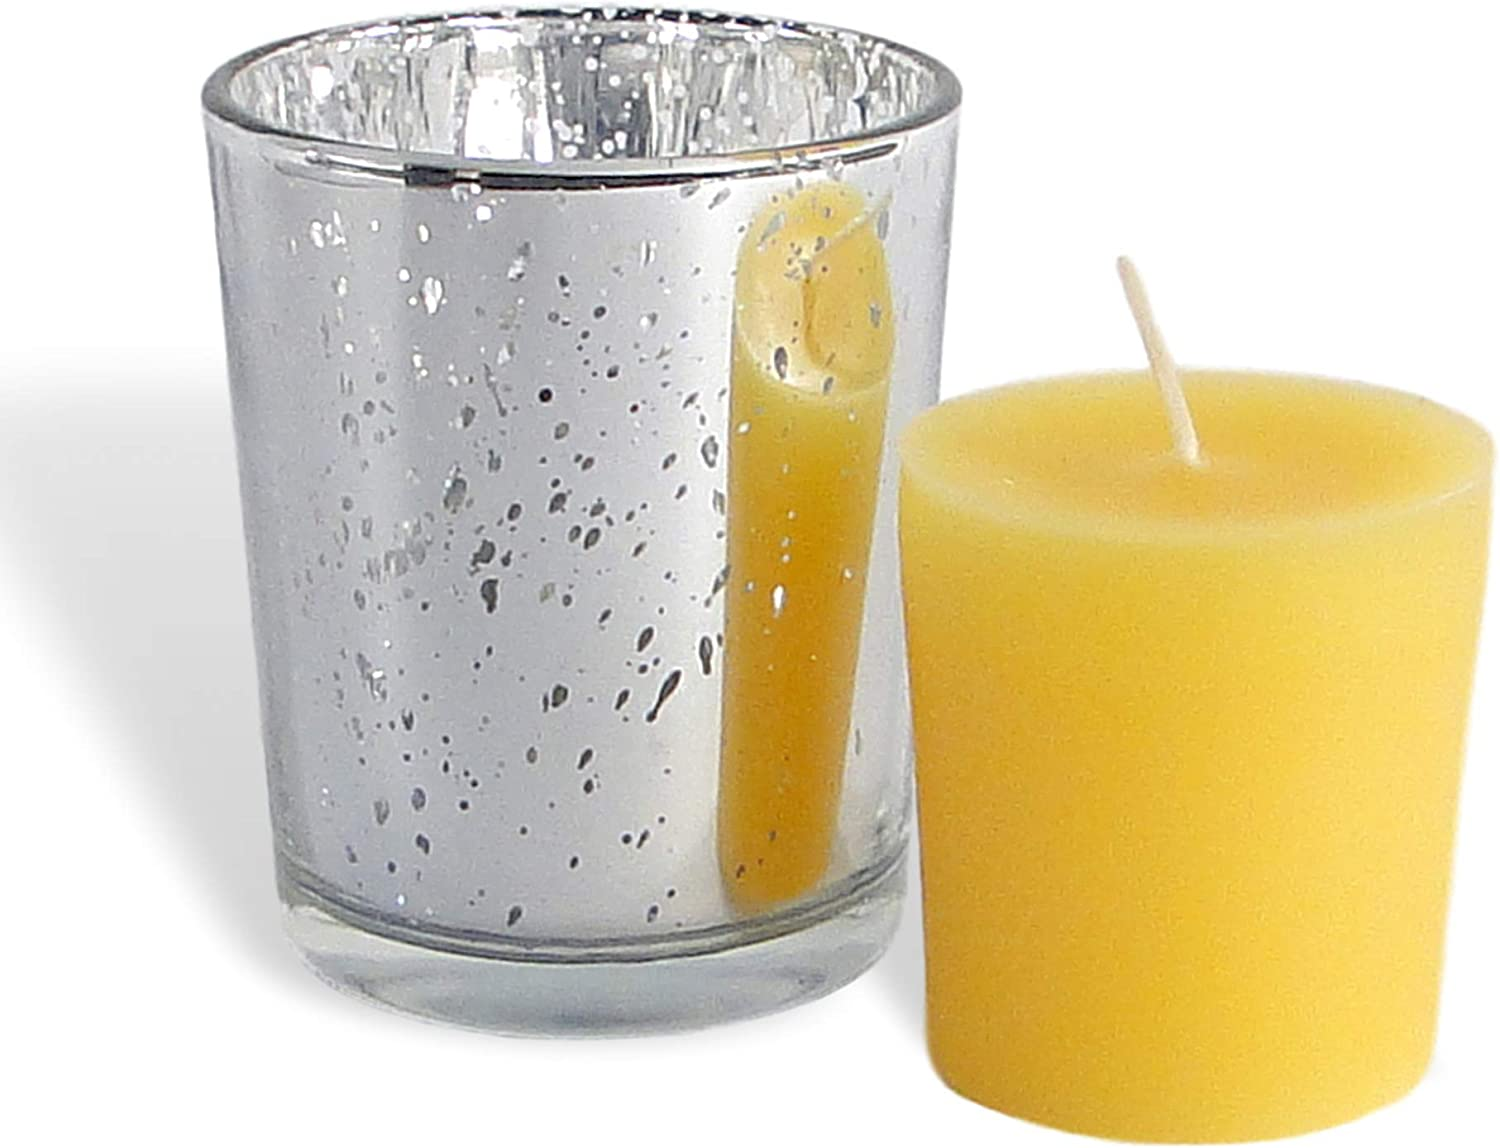 BCandle 100% Pure Raw Soldering Beeswax Votive Si Holder Glass in Candles Max 71% OFF